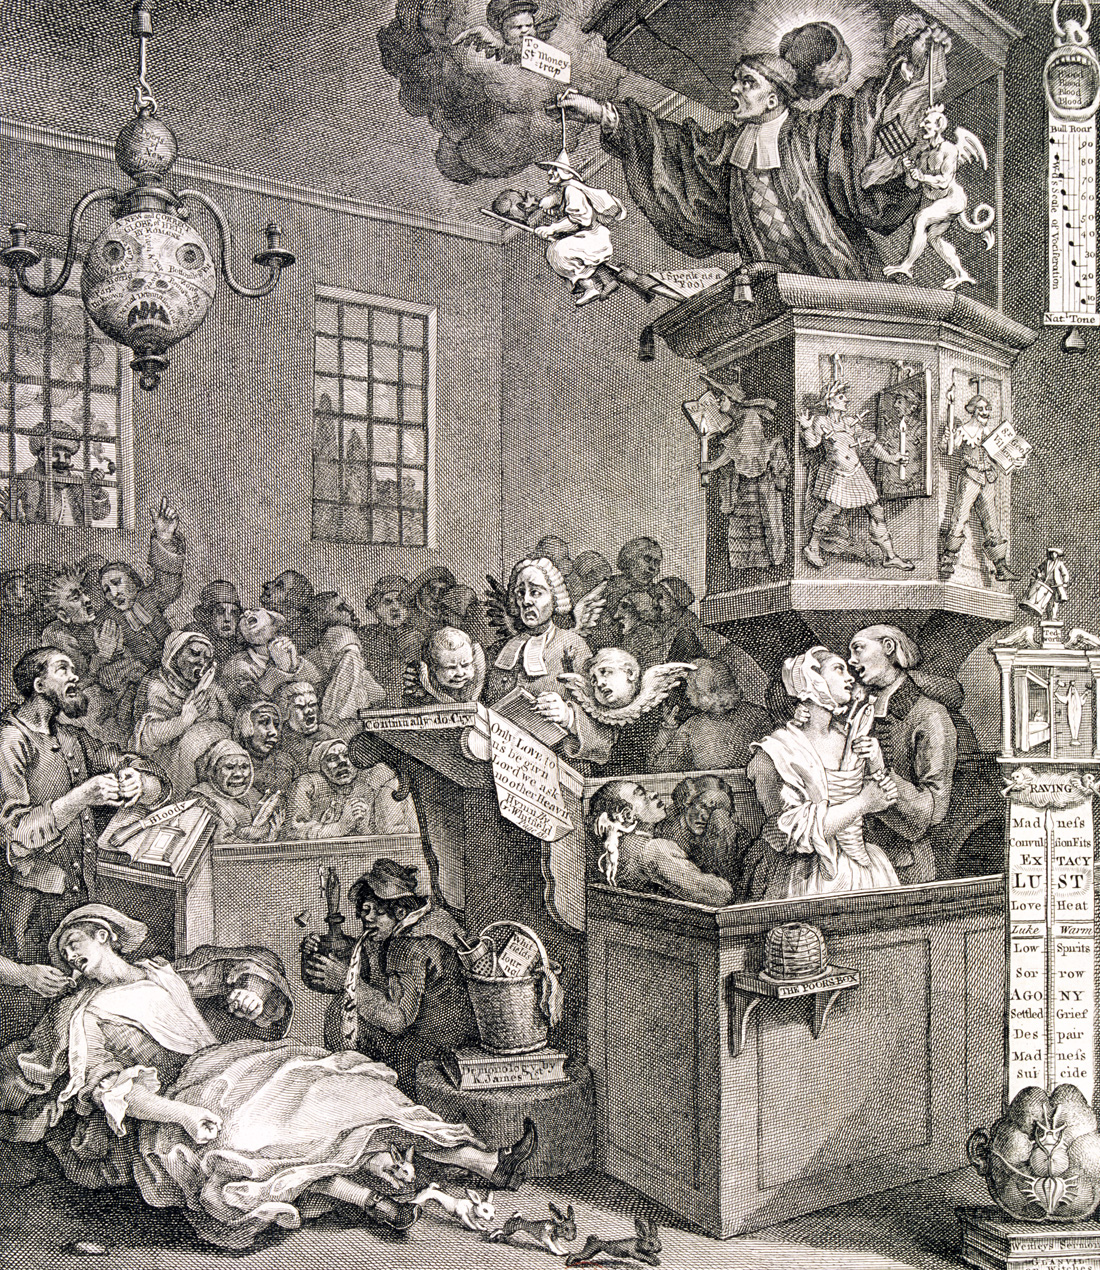 Credulity, Superstition, and Fanaticism, by William Hogarth, 1762.